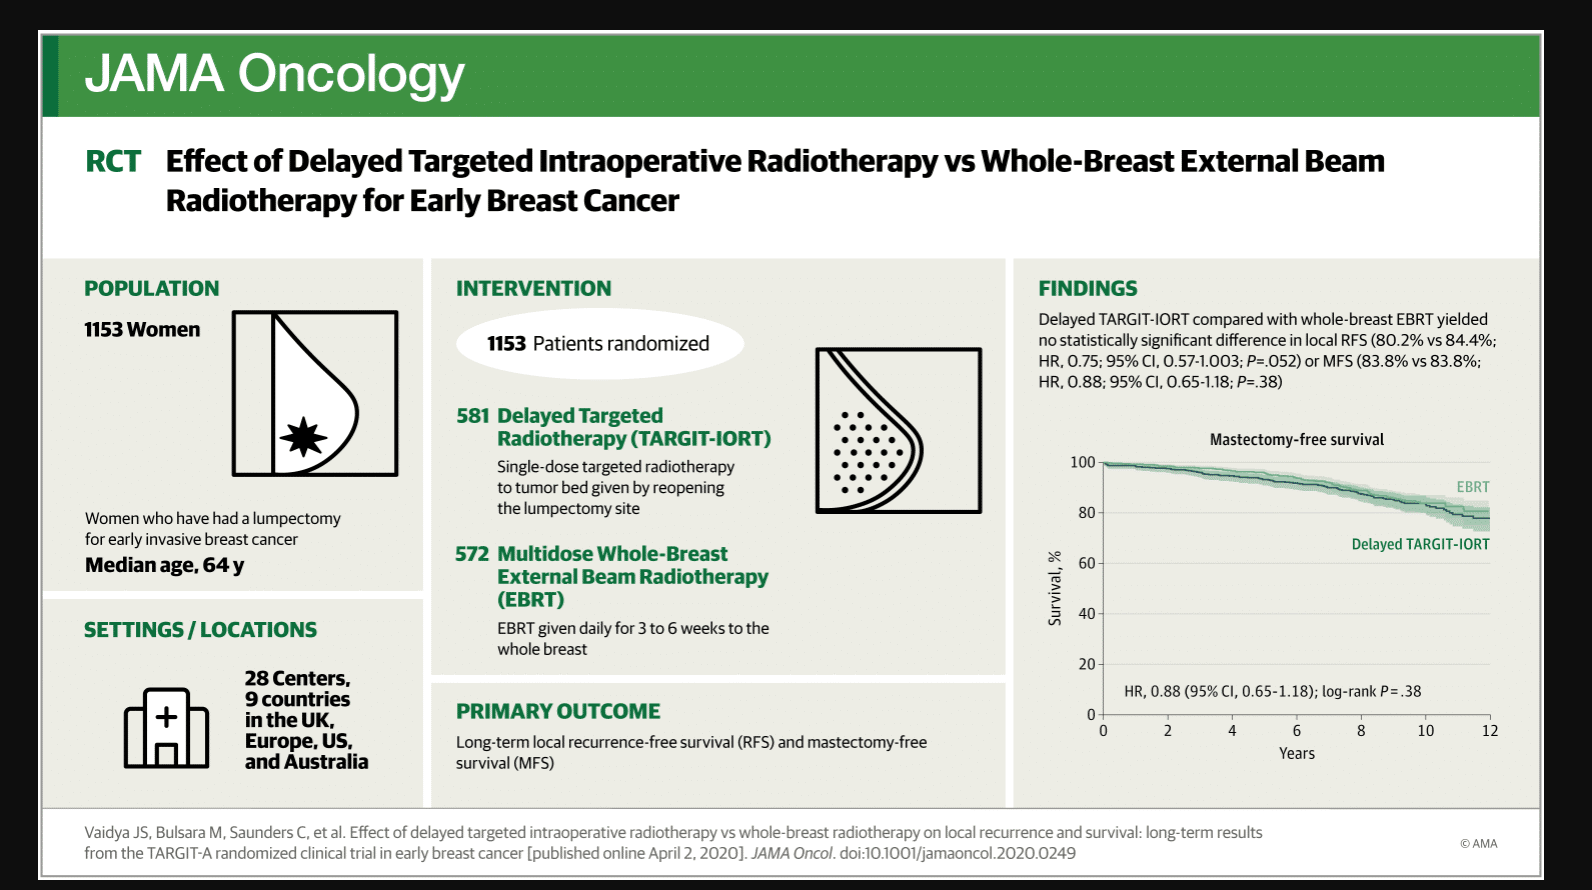 ffect of Delayed Targeted Intraoperative Radiotherapy vs Whole-Breast Radiotherapy on Local Recurrence and Survival